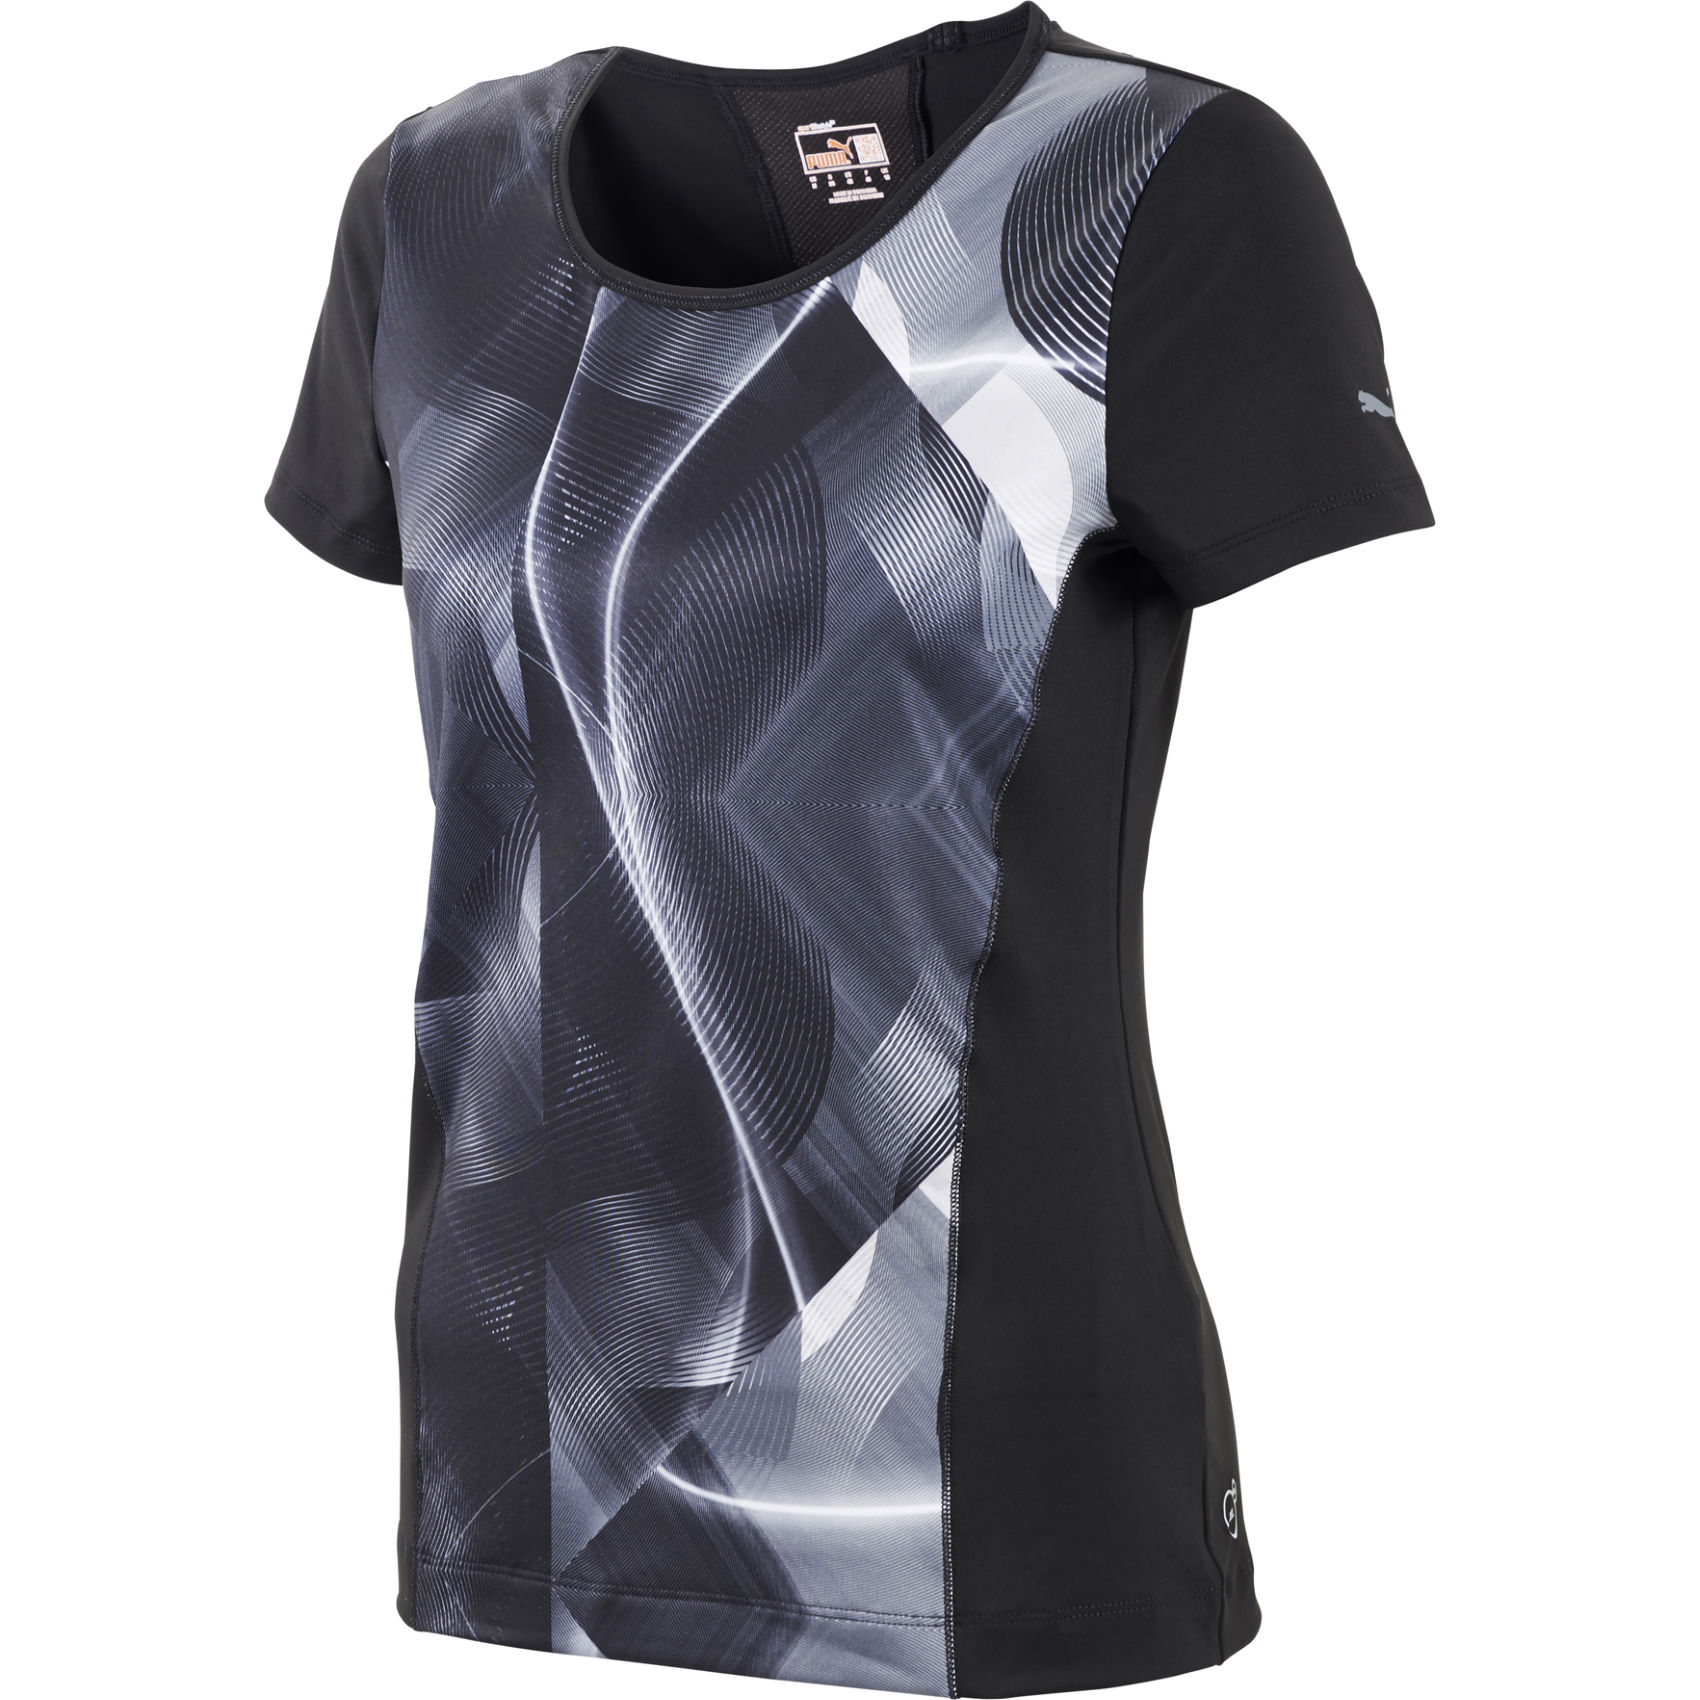 maillots de running manches courtes puma women 39 s fitness graphic t shirt aw14 wiggle. Black Bedroom Furniture Sets. Home Design Ideas